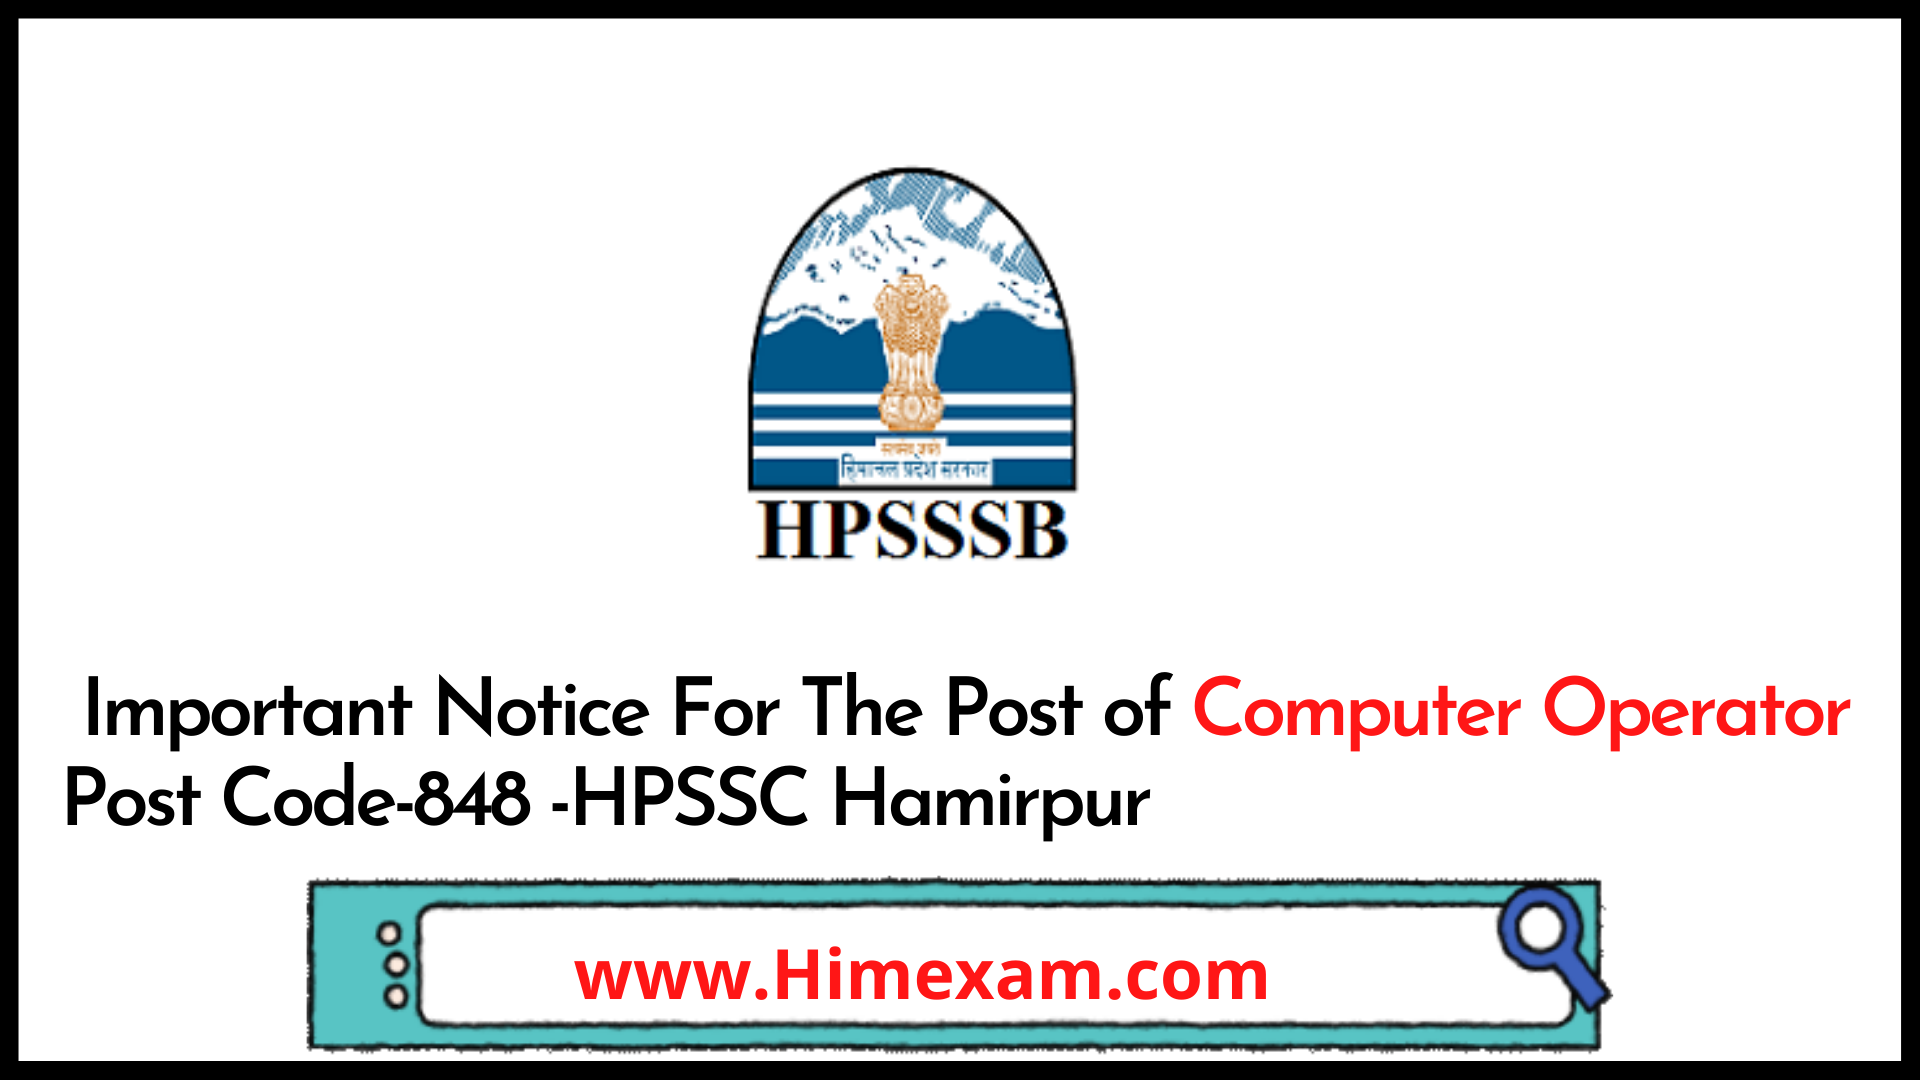 Important Notice For The Post of Computer Operator Post Code-848 -HPSSC Hamirpur